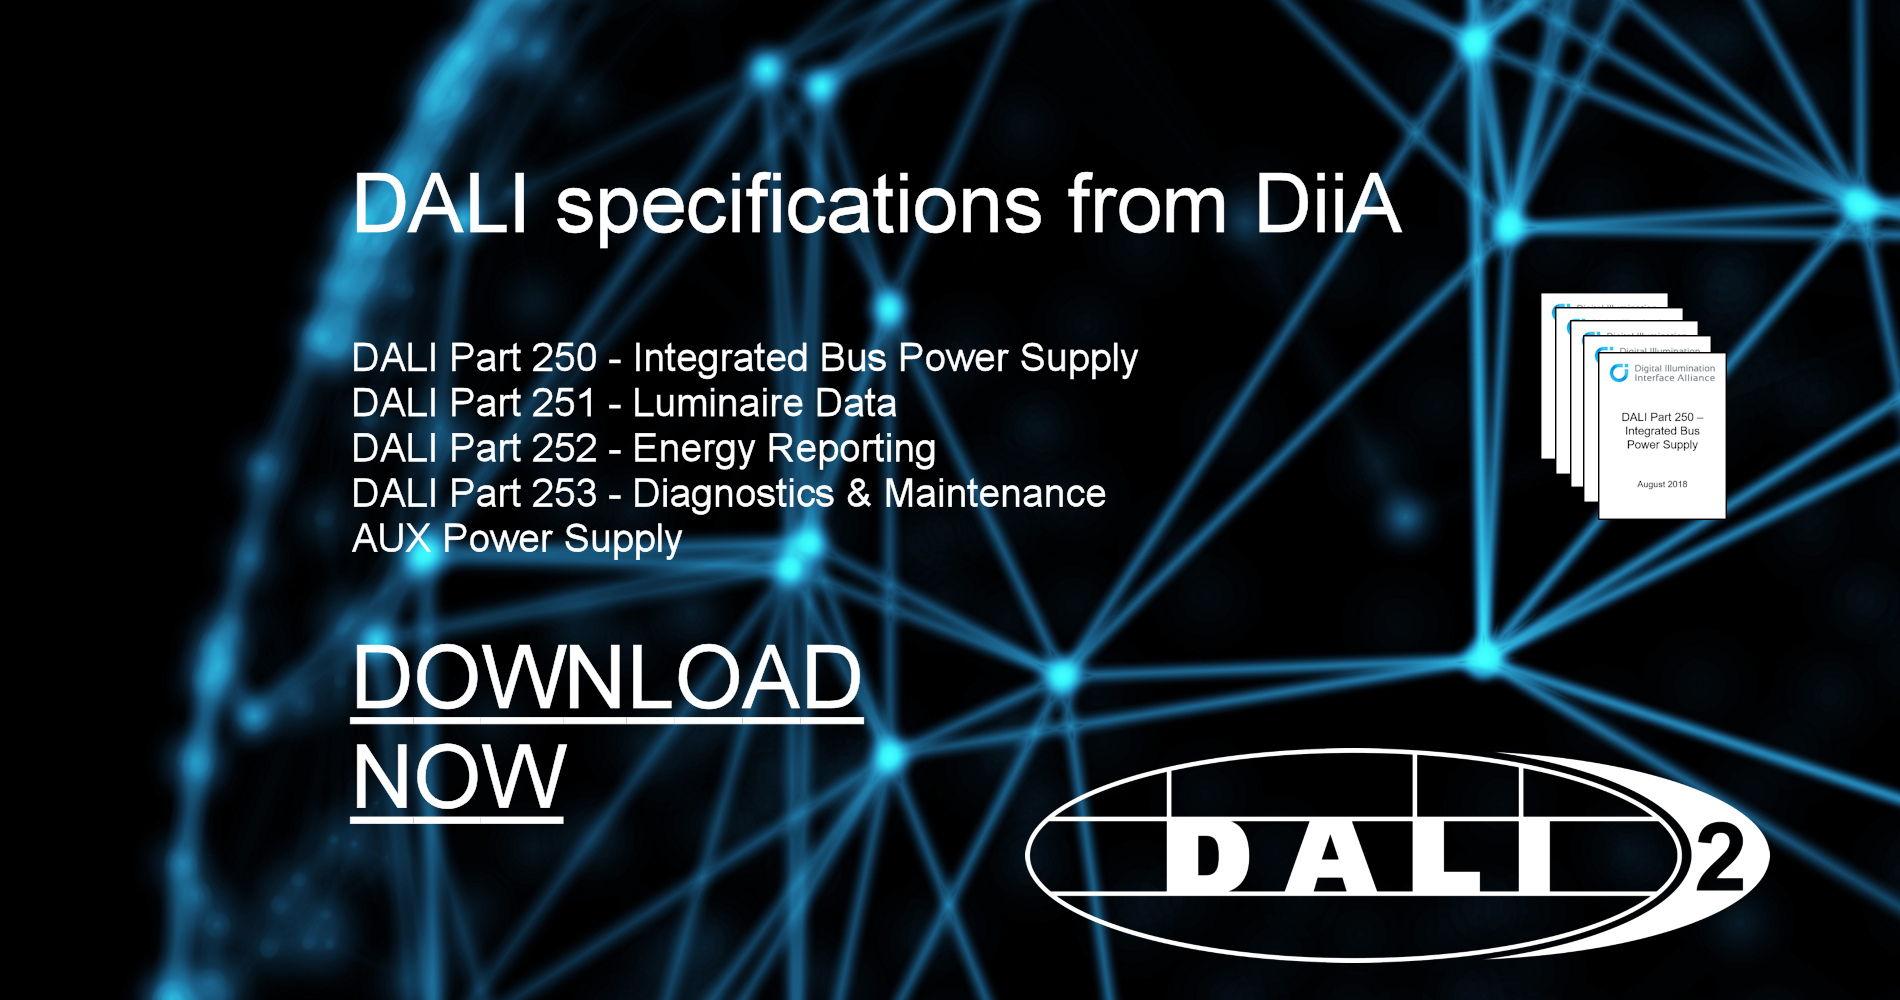 Diia has finalized a set of five new specifications based on the dali lighting control protocol that address the market need for intelligent lighting